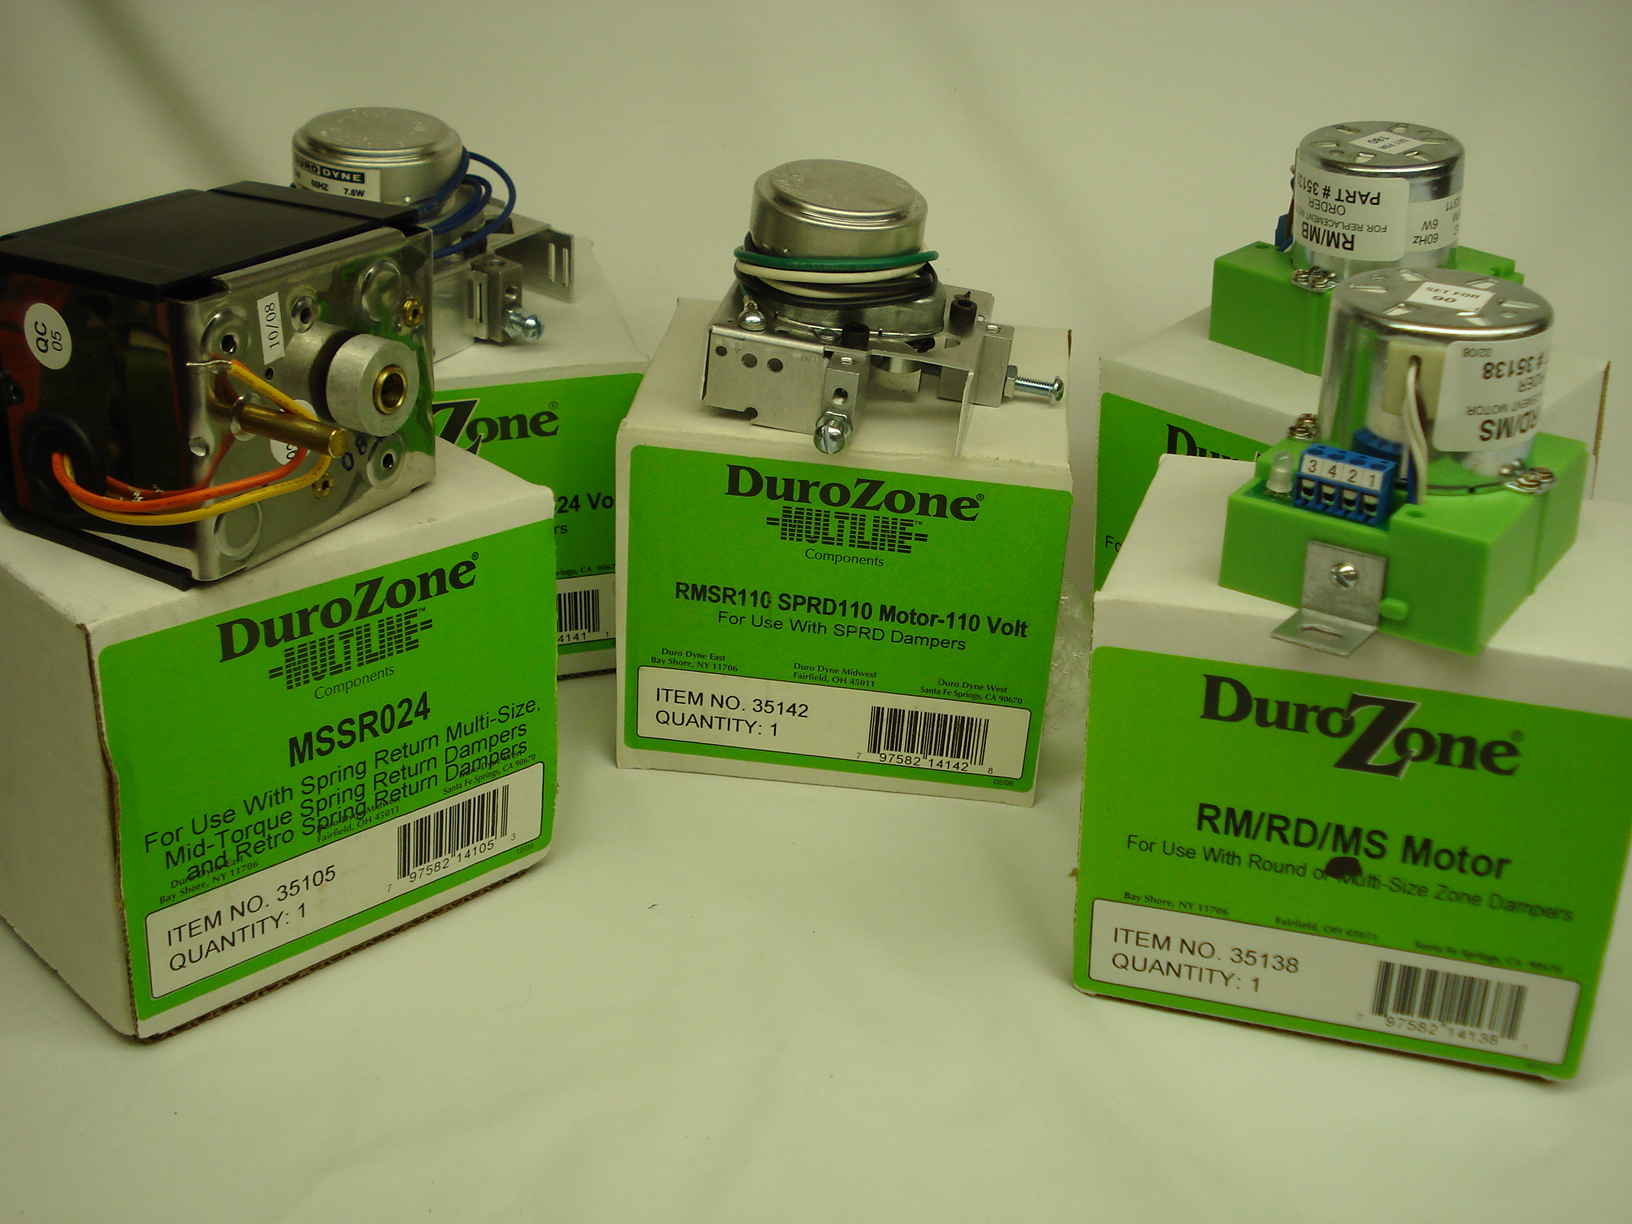 rertrozone replacement motors